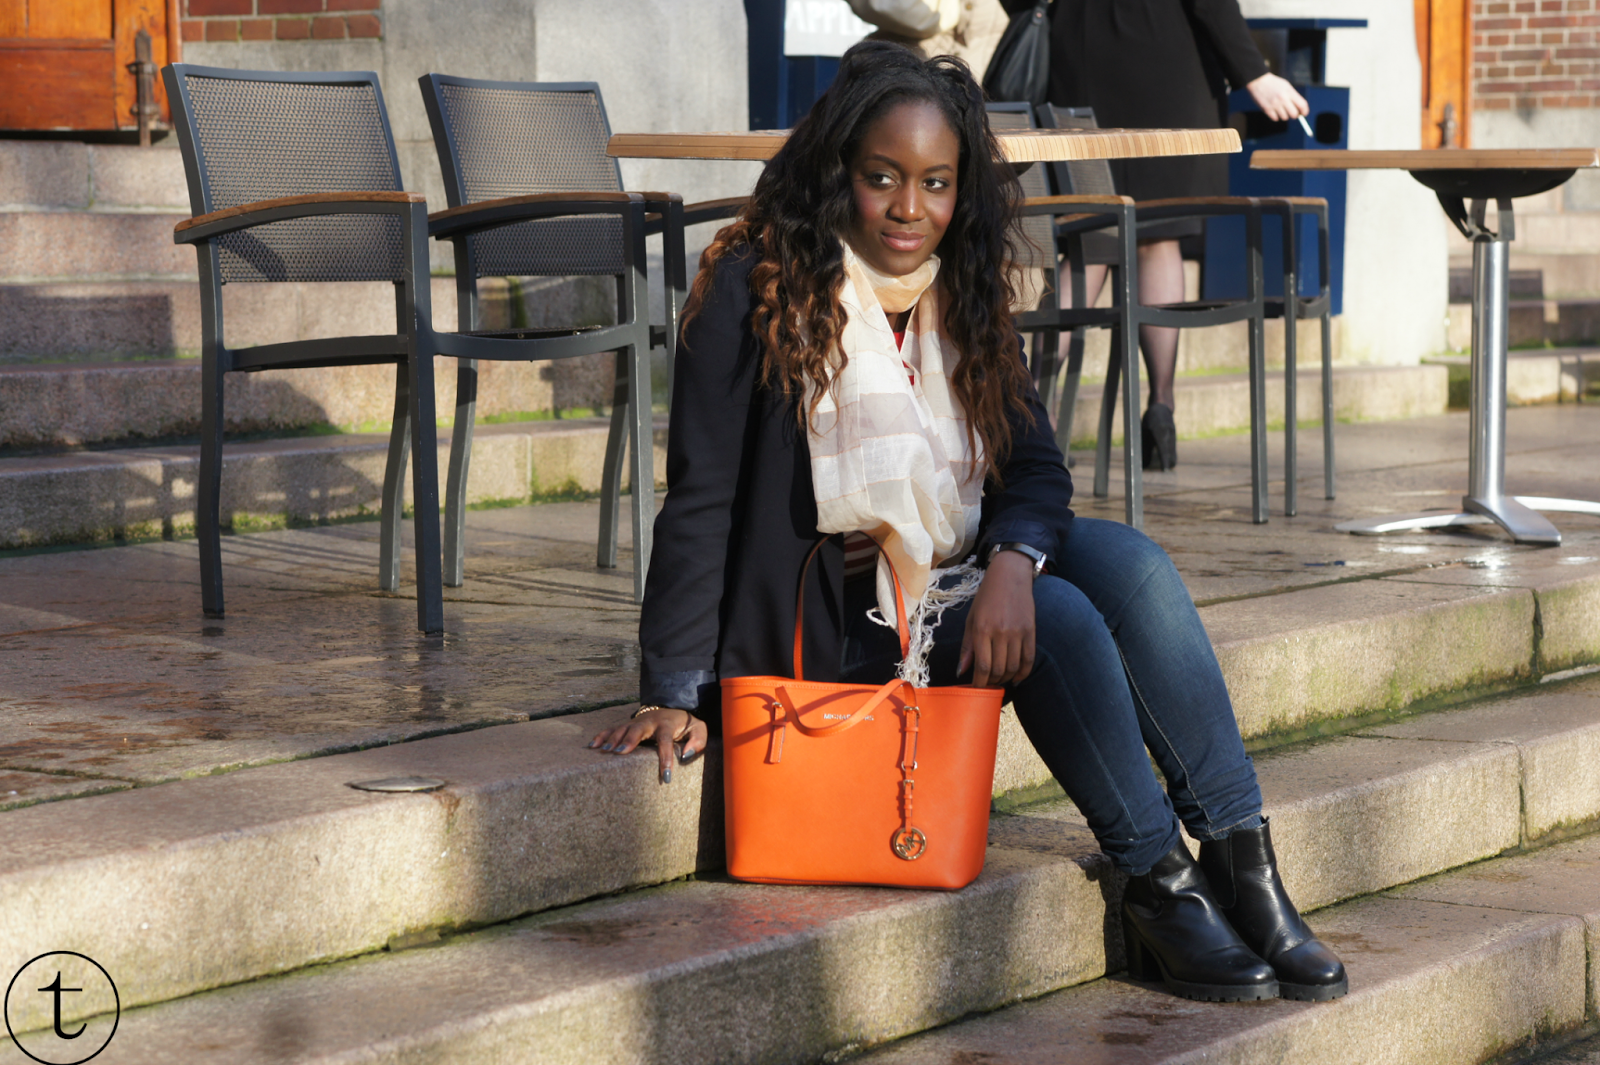 outft wearing zara blazer and orange michael kors bag